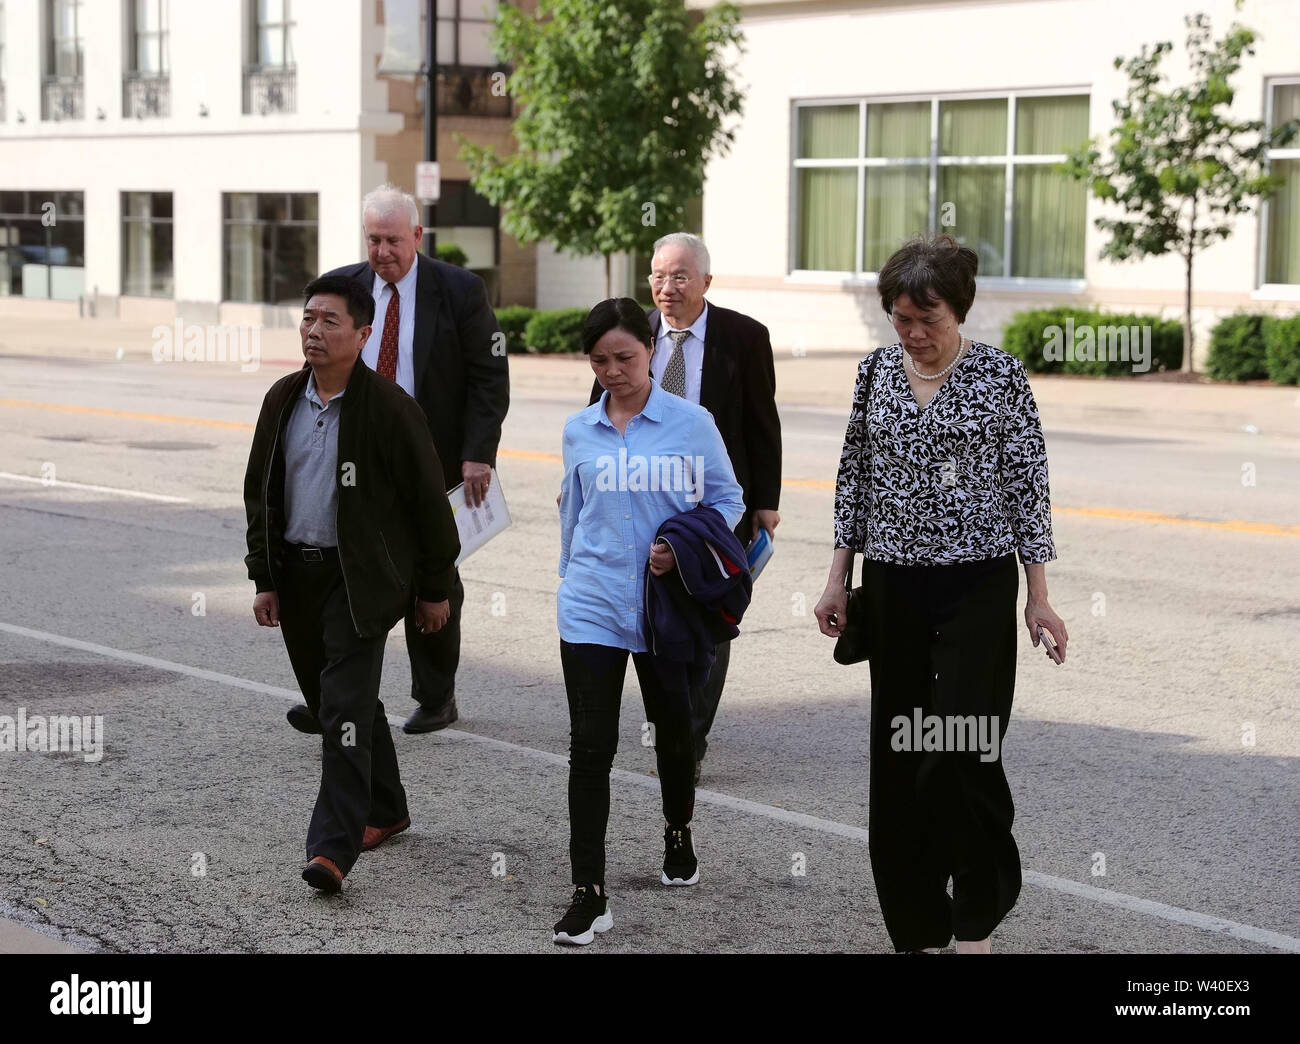 Peoria, USA. 18th July, 2019. Family members of Chinese scholar Zhang Yingying head to a federal courthouse building in Peoria, Illinois, the United States, on July 18, 2019. Brendt Christensen, the kidnapper and killer of Chinese scholar Zhang Yingying in 2017, was sentenced on Thursday to life imprisonment without possibility of release, Judge James Shadid announced the verdict in a federal court of Peoria in the U.S. state of Illinois, after the jury failed to reach a unanimous decision on whether he should be sentenced to death or life in prison. Credit: Wang Ping/Xinhua/Alamy Live News - Stock Image